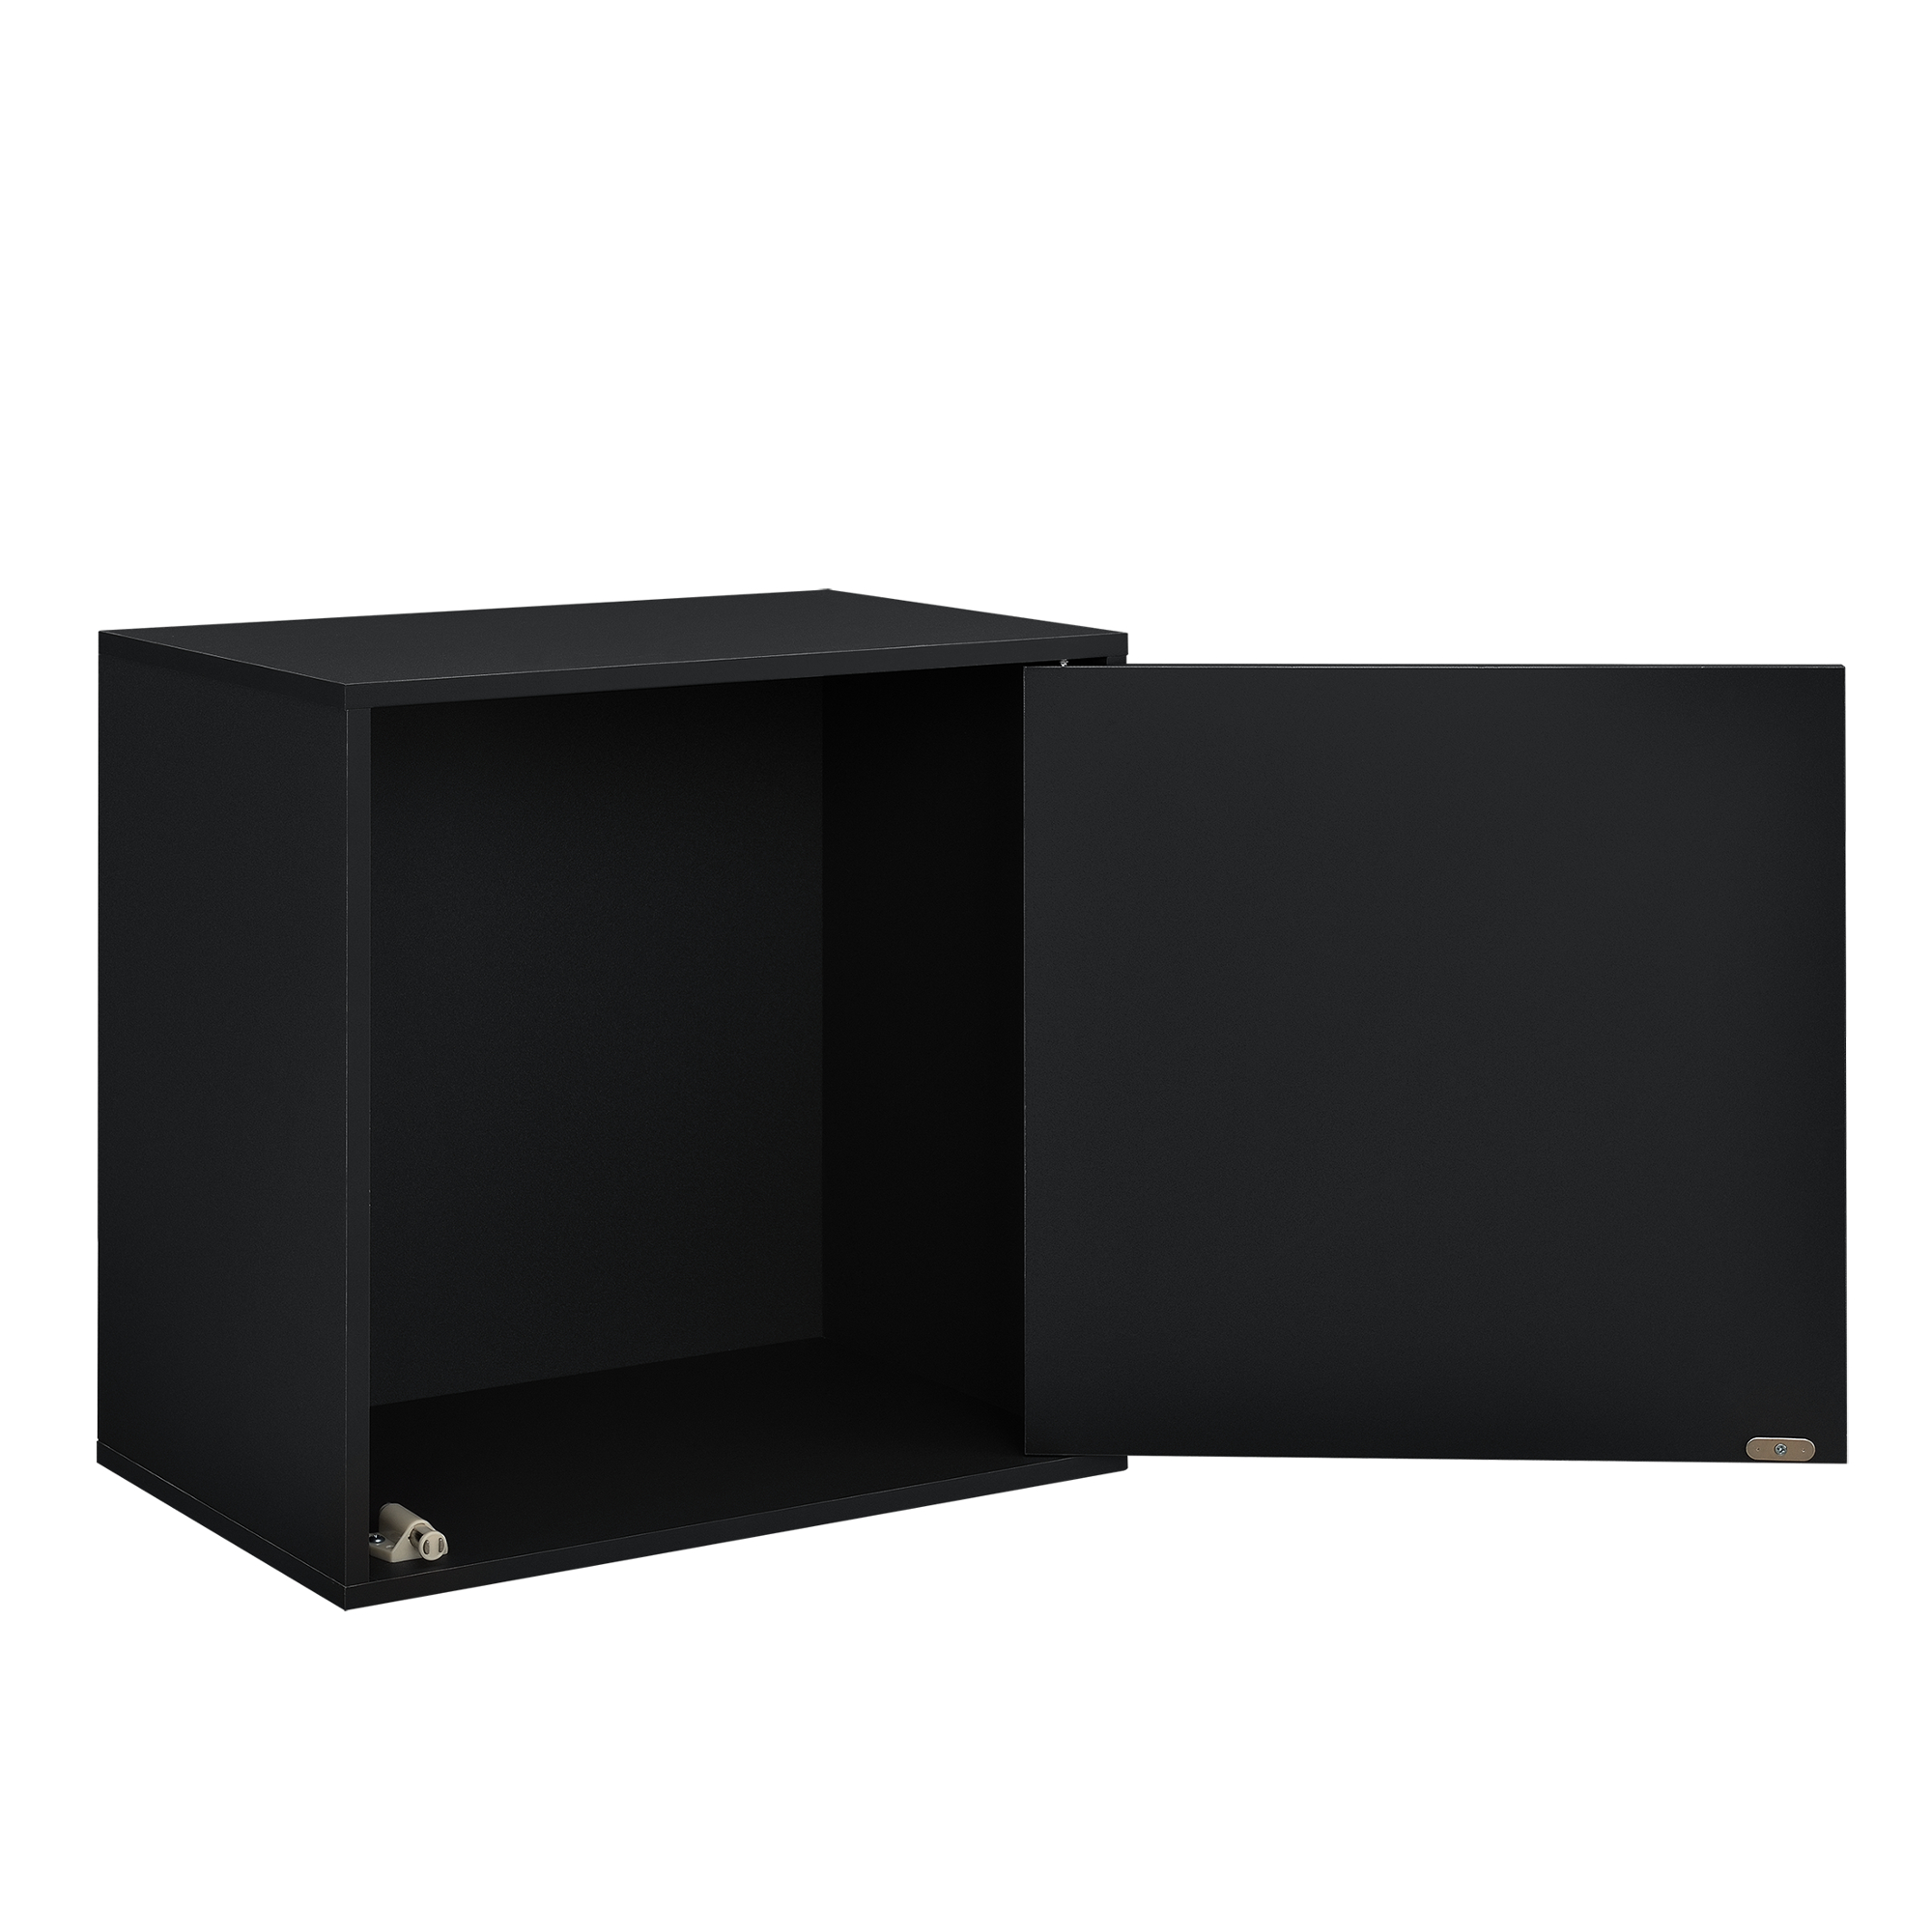 h ngeschrank 45x45x30cm schwarz wandschrank. Black Bedroom Furniture Sets. Home Design Ideas